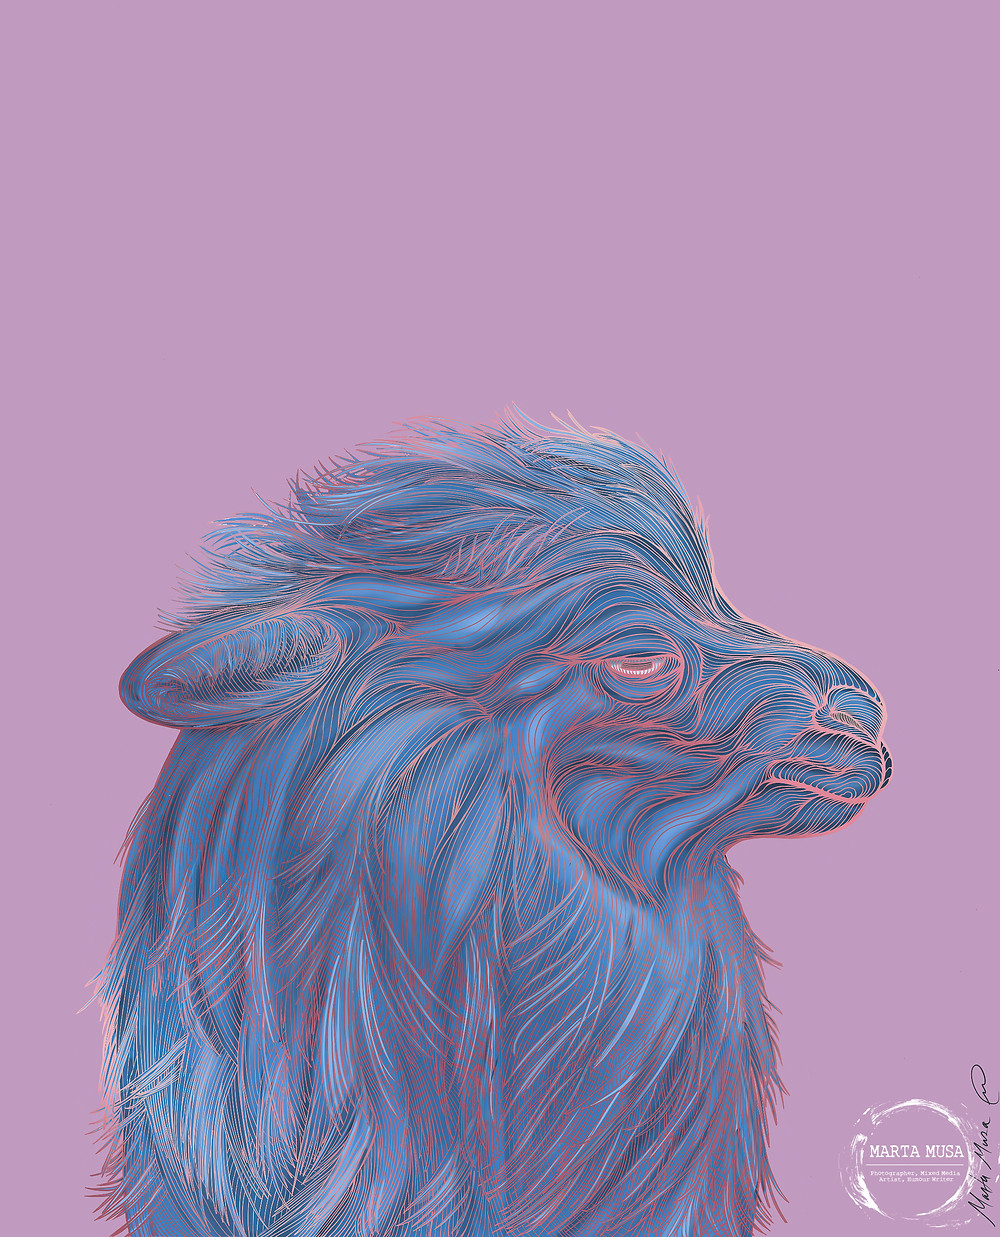 Contour line drawing of an Alpaca in profile.  He is coloured in shades of blue and the contour lines are in shades of a metallic/shiny pink.   The illlustration is done against a mauve background